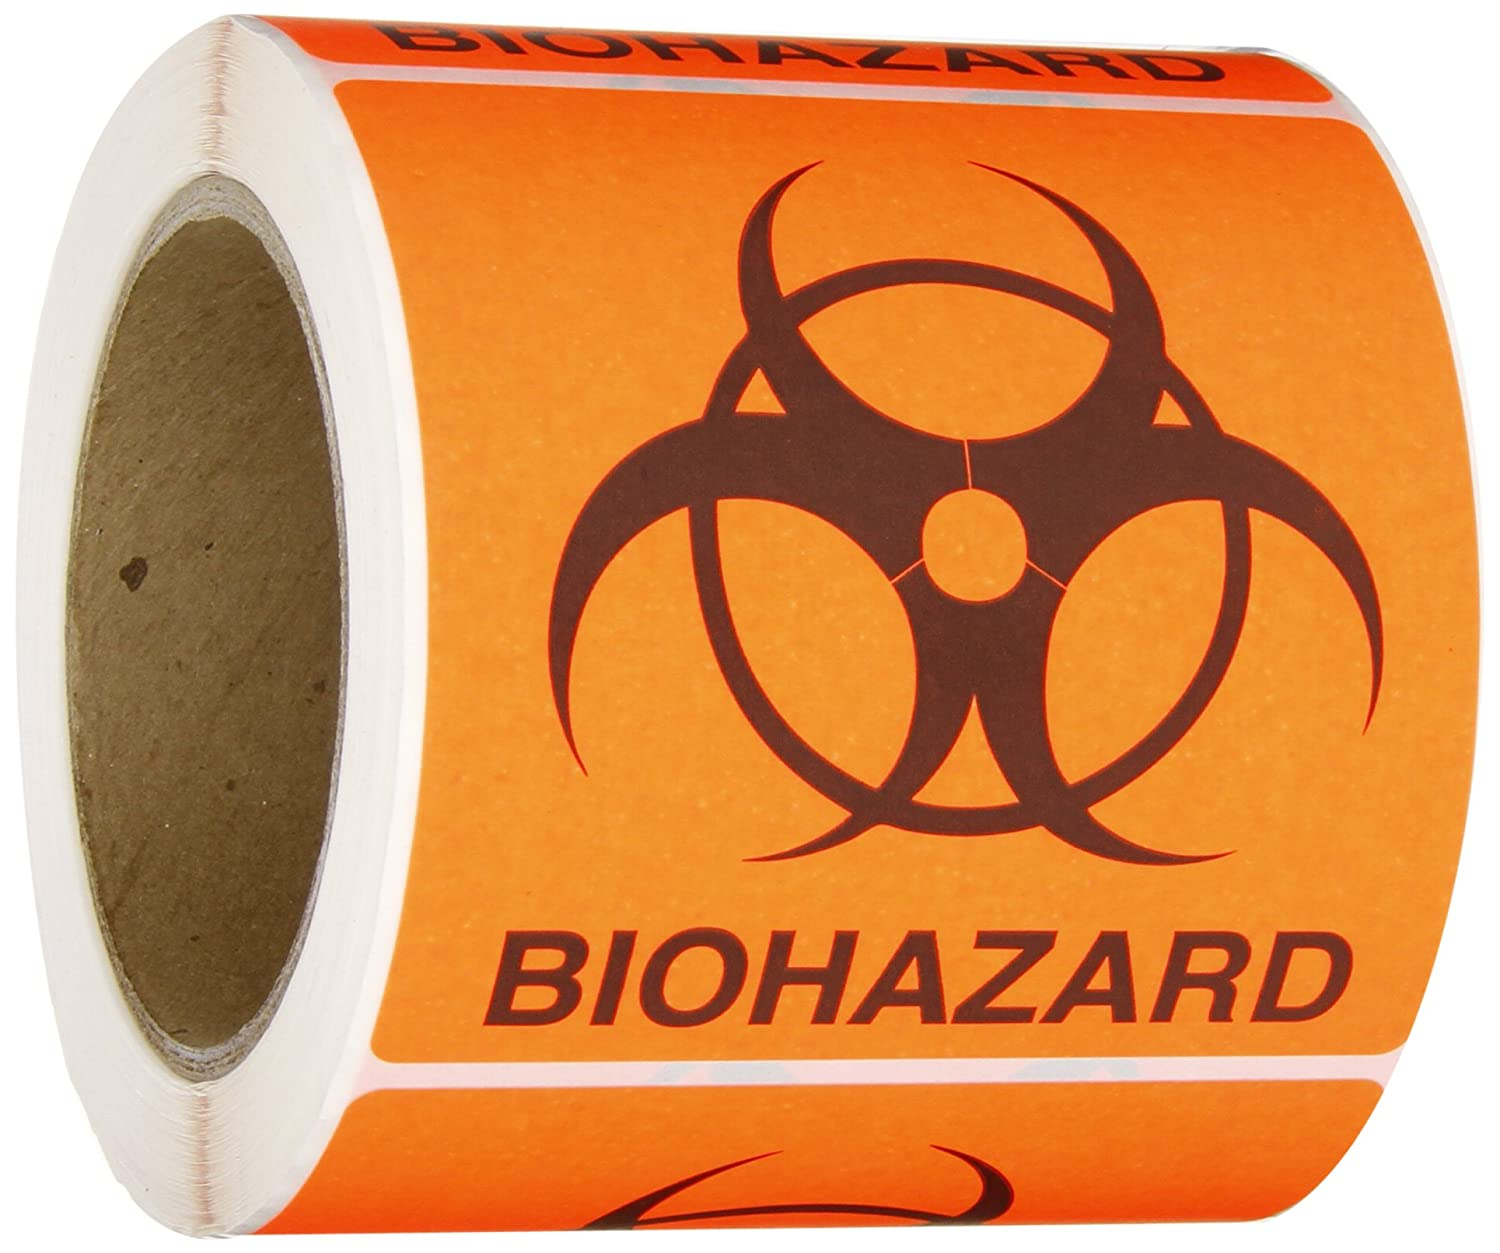 Roll Products 142-0010 Round Cornered Permanent Adhesive Biohazard Warning Label with Black Imprint, Legend 'Biohazard' (with Logo), 4' Length x 4' Width, for Identifying and Marking, Fluorescent Red/Orange (Roll of 250) Legend Biohazard (with Logo) Inc